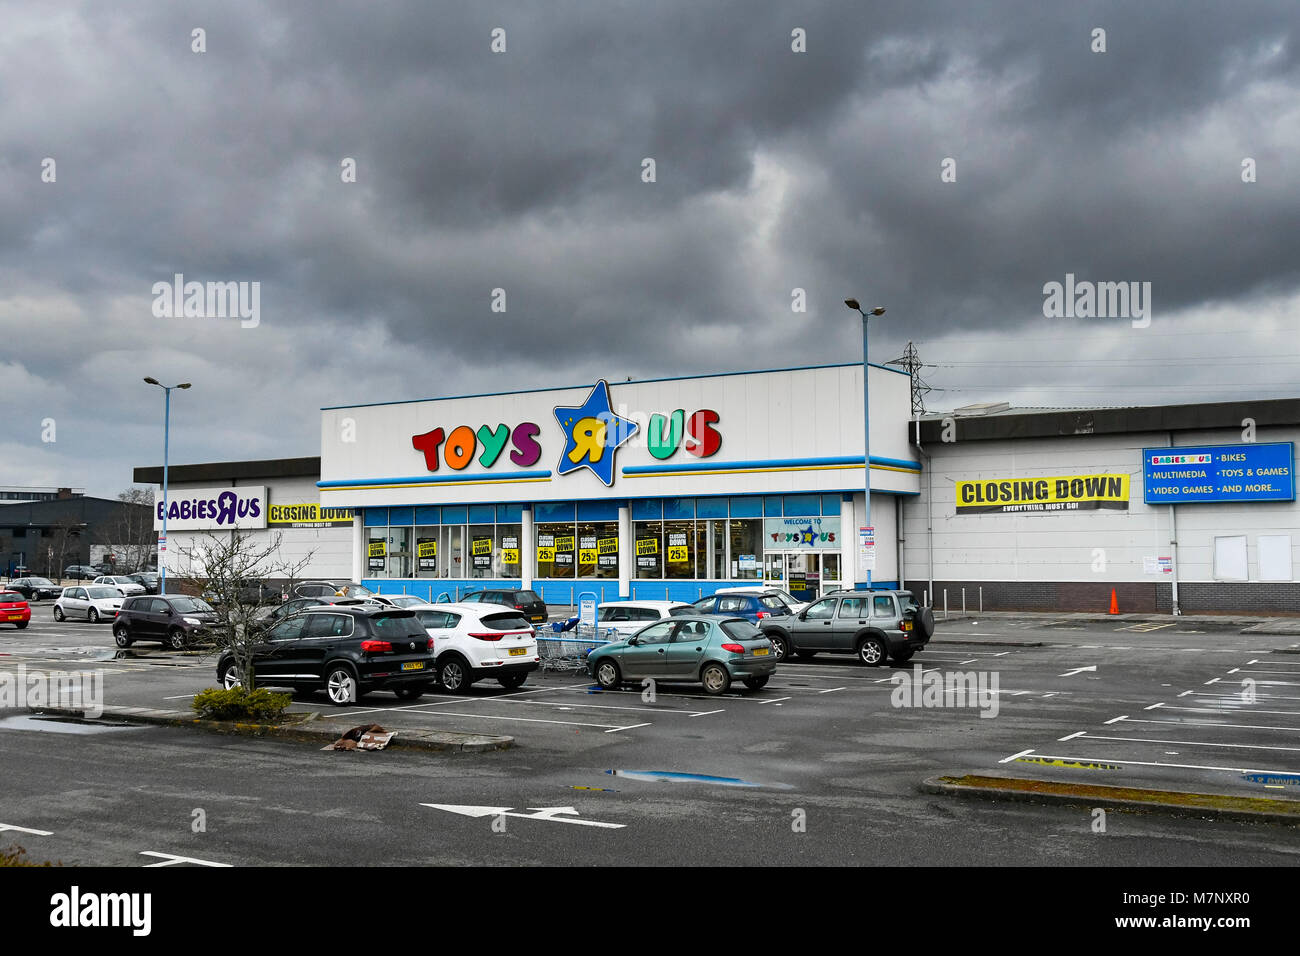 Toy Superstore Stock Photos & Toy Superstore Stock Images - Alamy